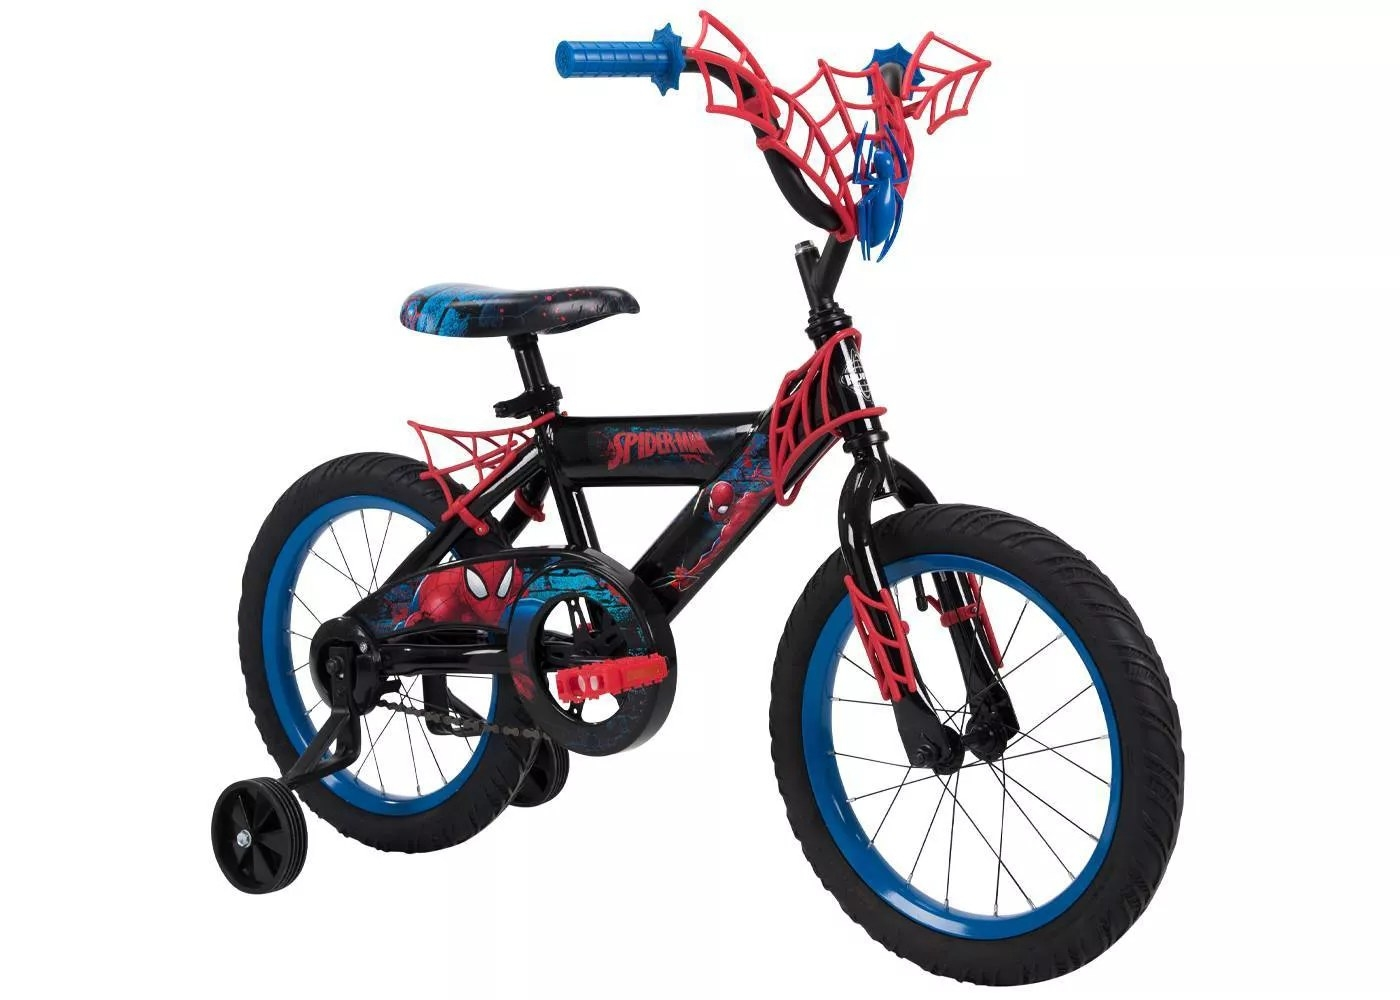 The Spiderman bike with training wheels